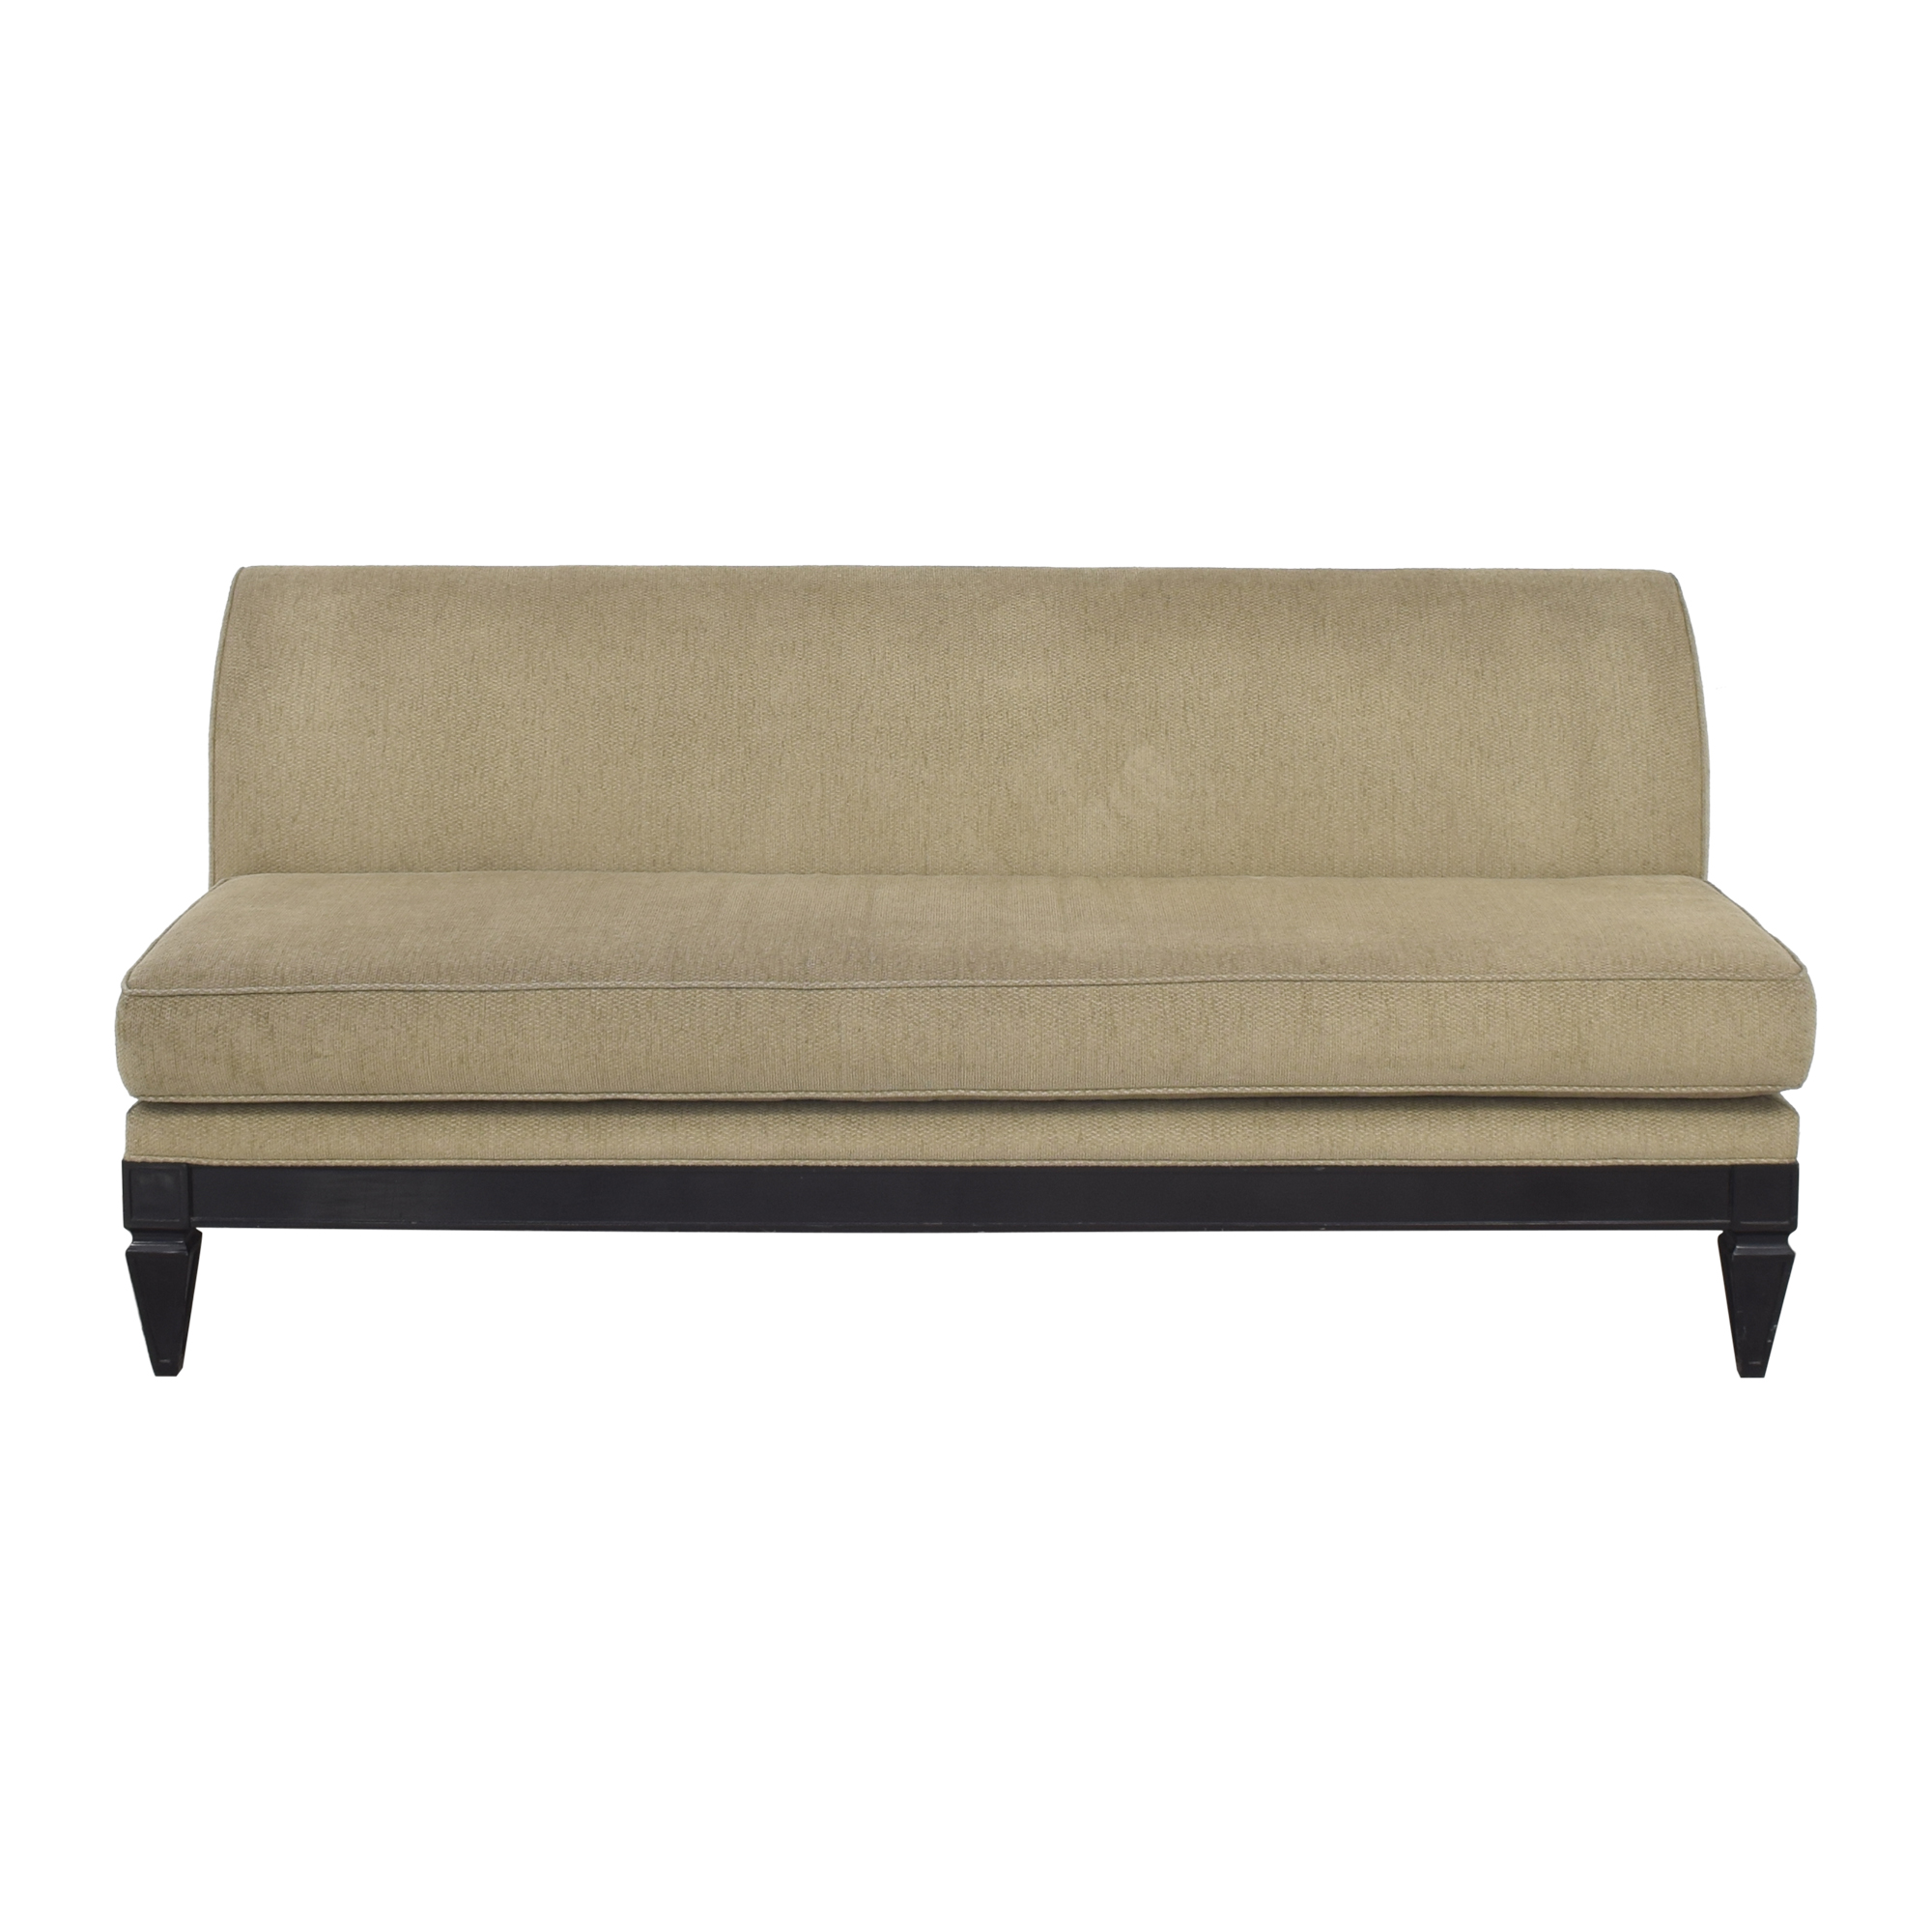 Todd Hase Todd Hase Antoinette Settee dimensions